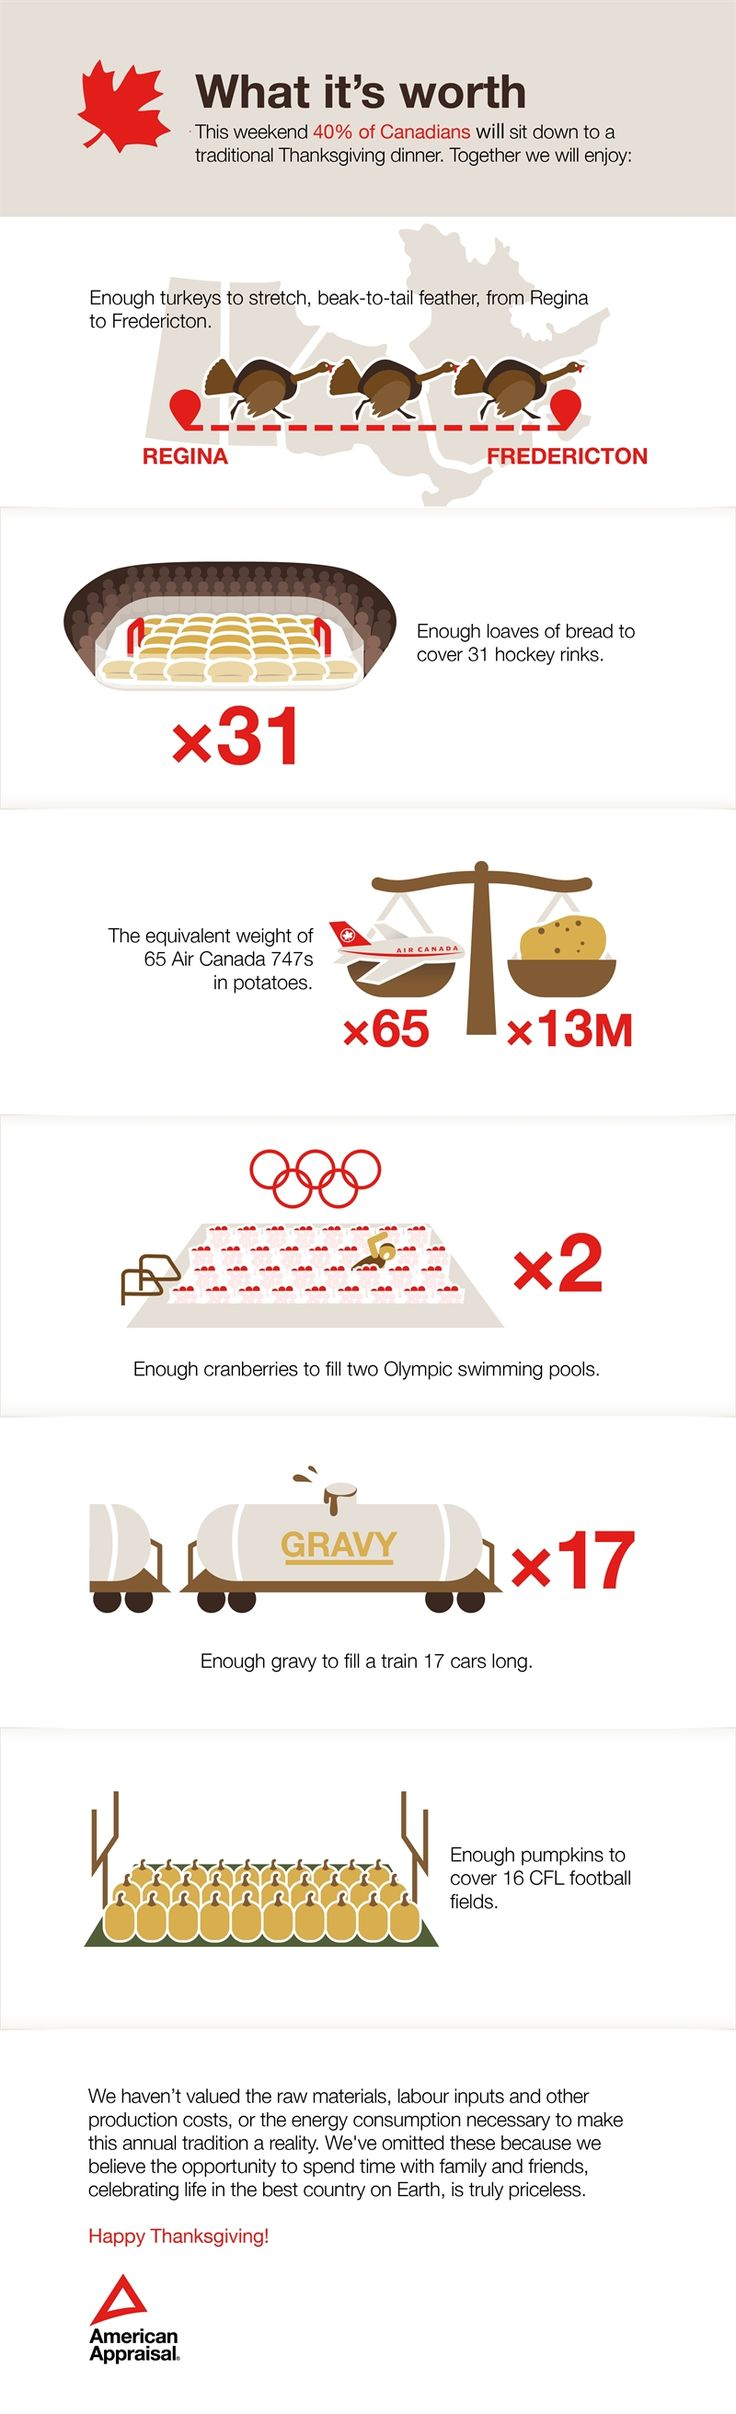 Awesome And Fun Facts About Canadian Thanksgiving (INFOGRAPHIC) | BlogHer